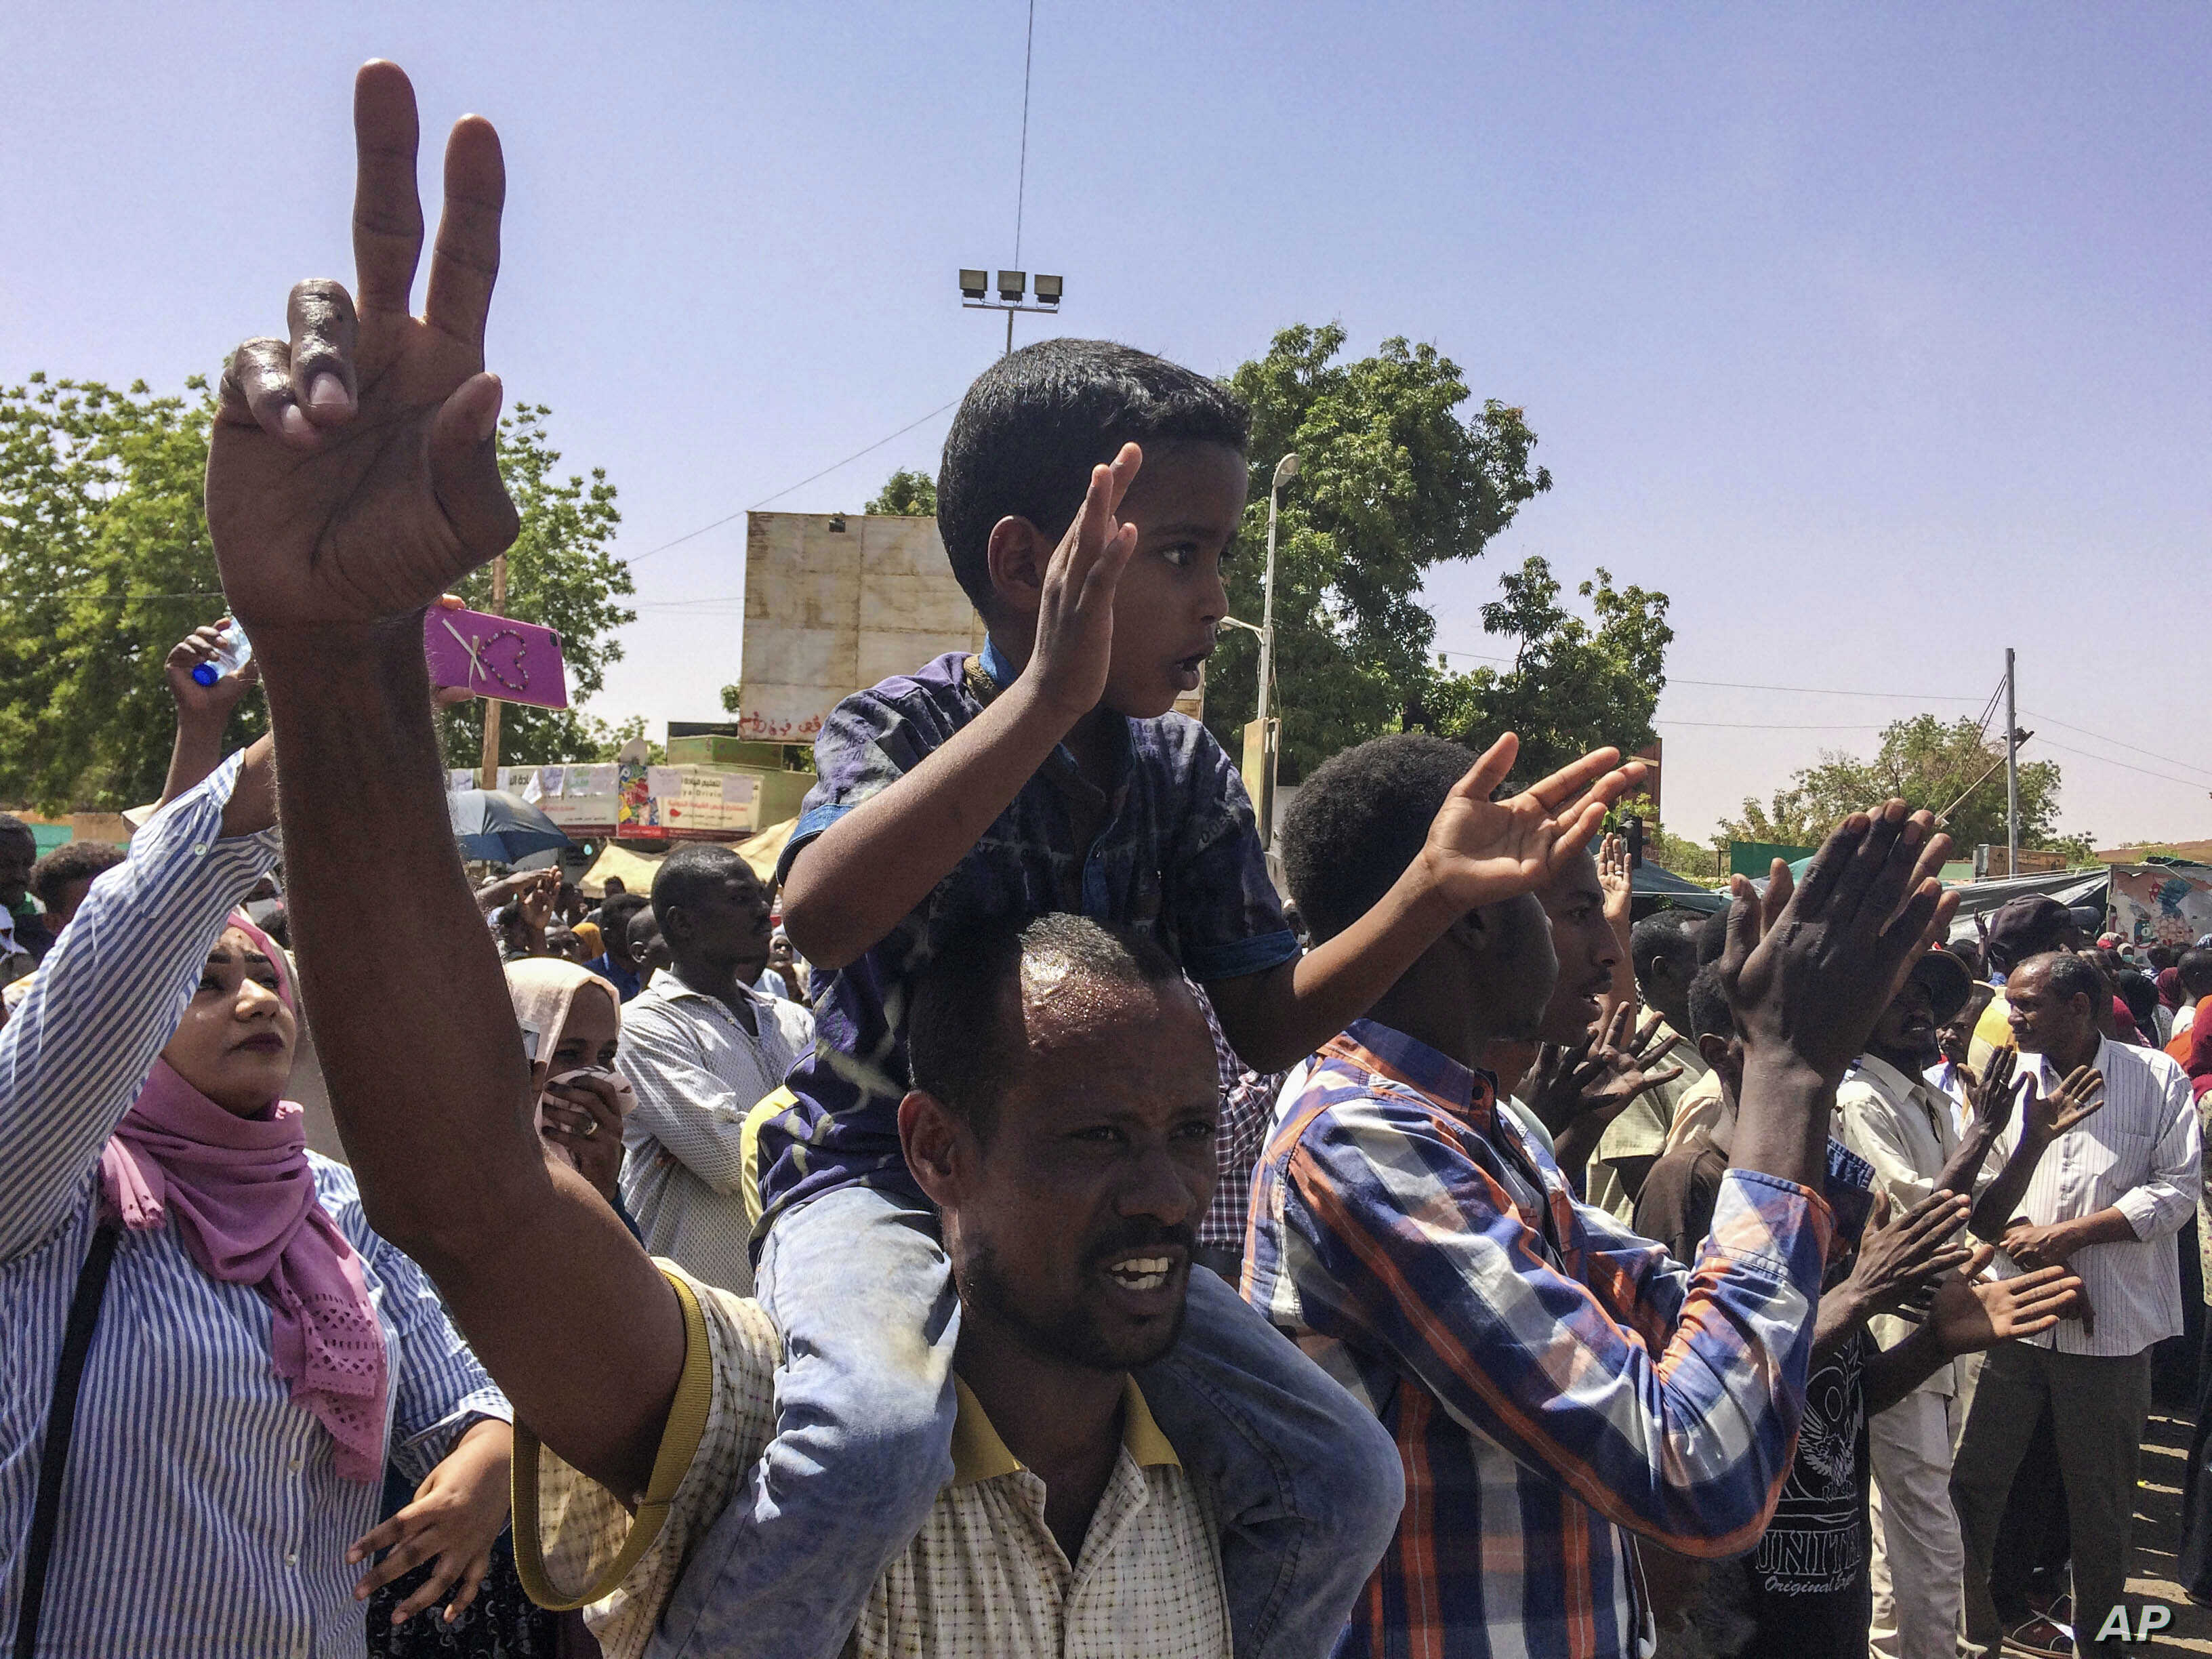 Its Not Just Demonstrators Saying >> Sudan Police Ordered Not To Shoot Protesters Voice Of America